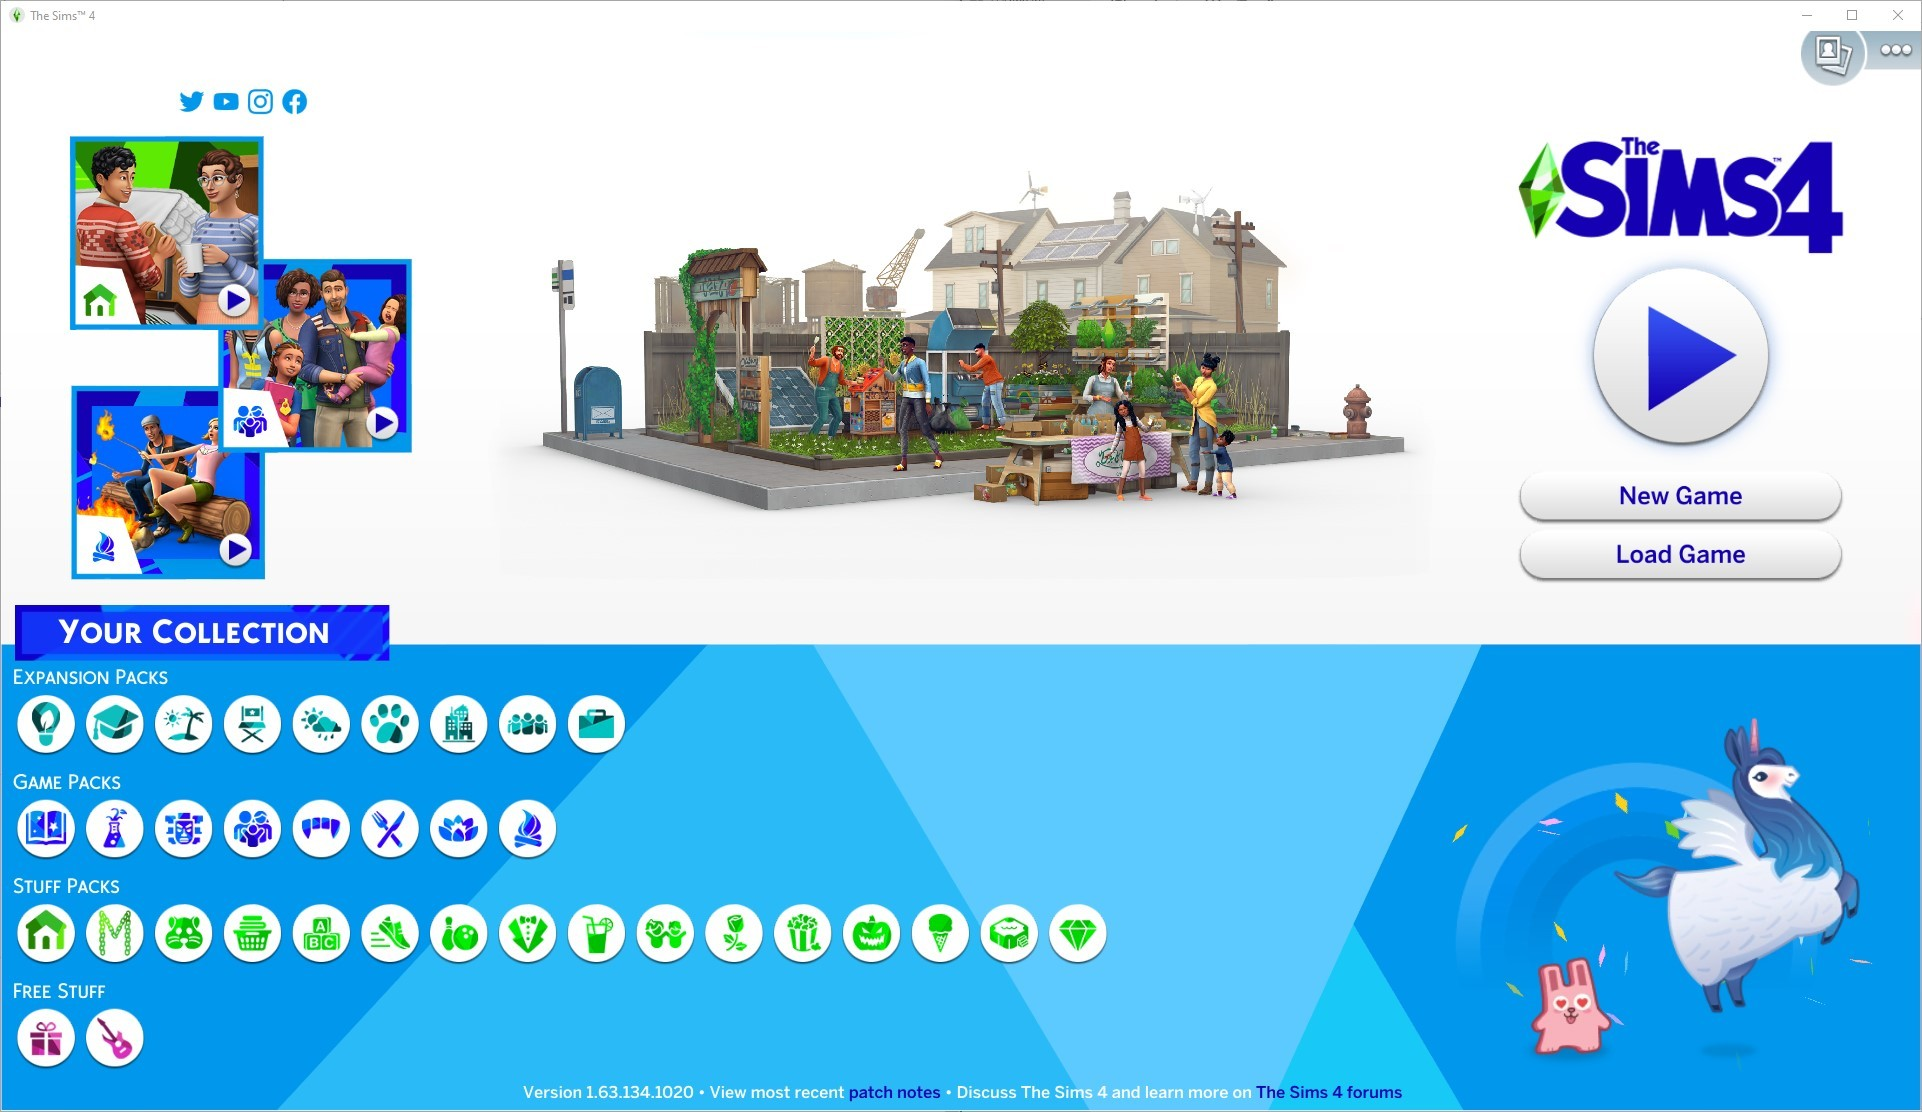 The Sims 4 June 10th Update Only 1.63.136.1010 [Requires All in One 1.63.134.1020] - The Sim Architect